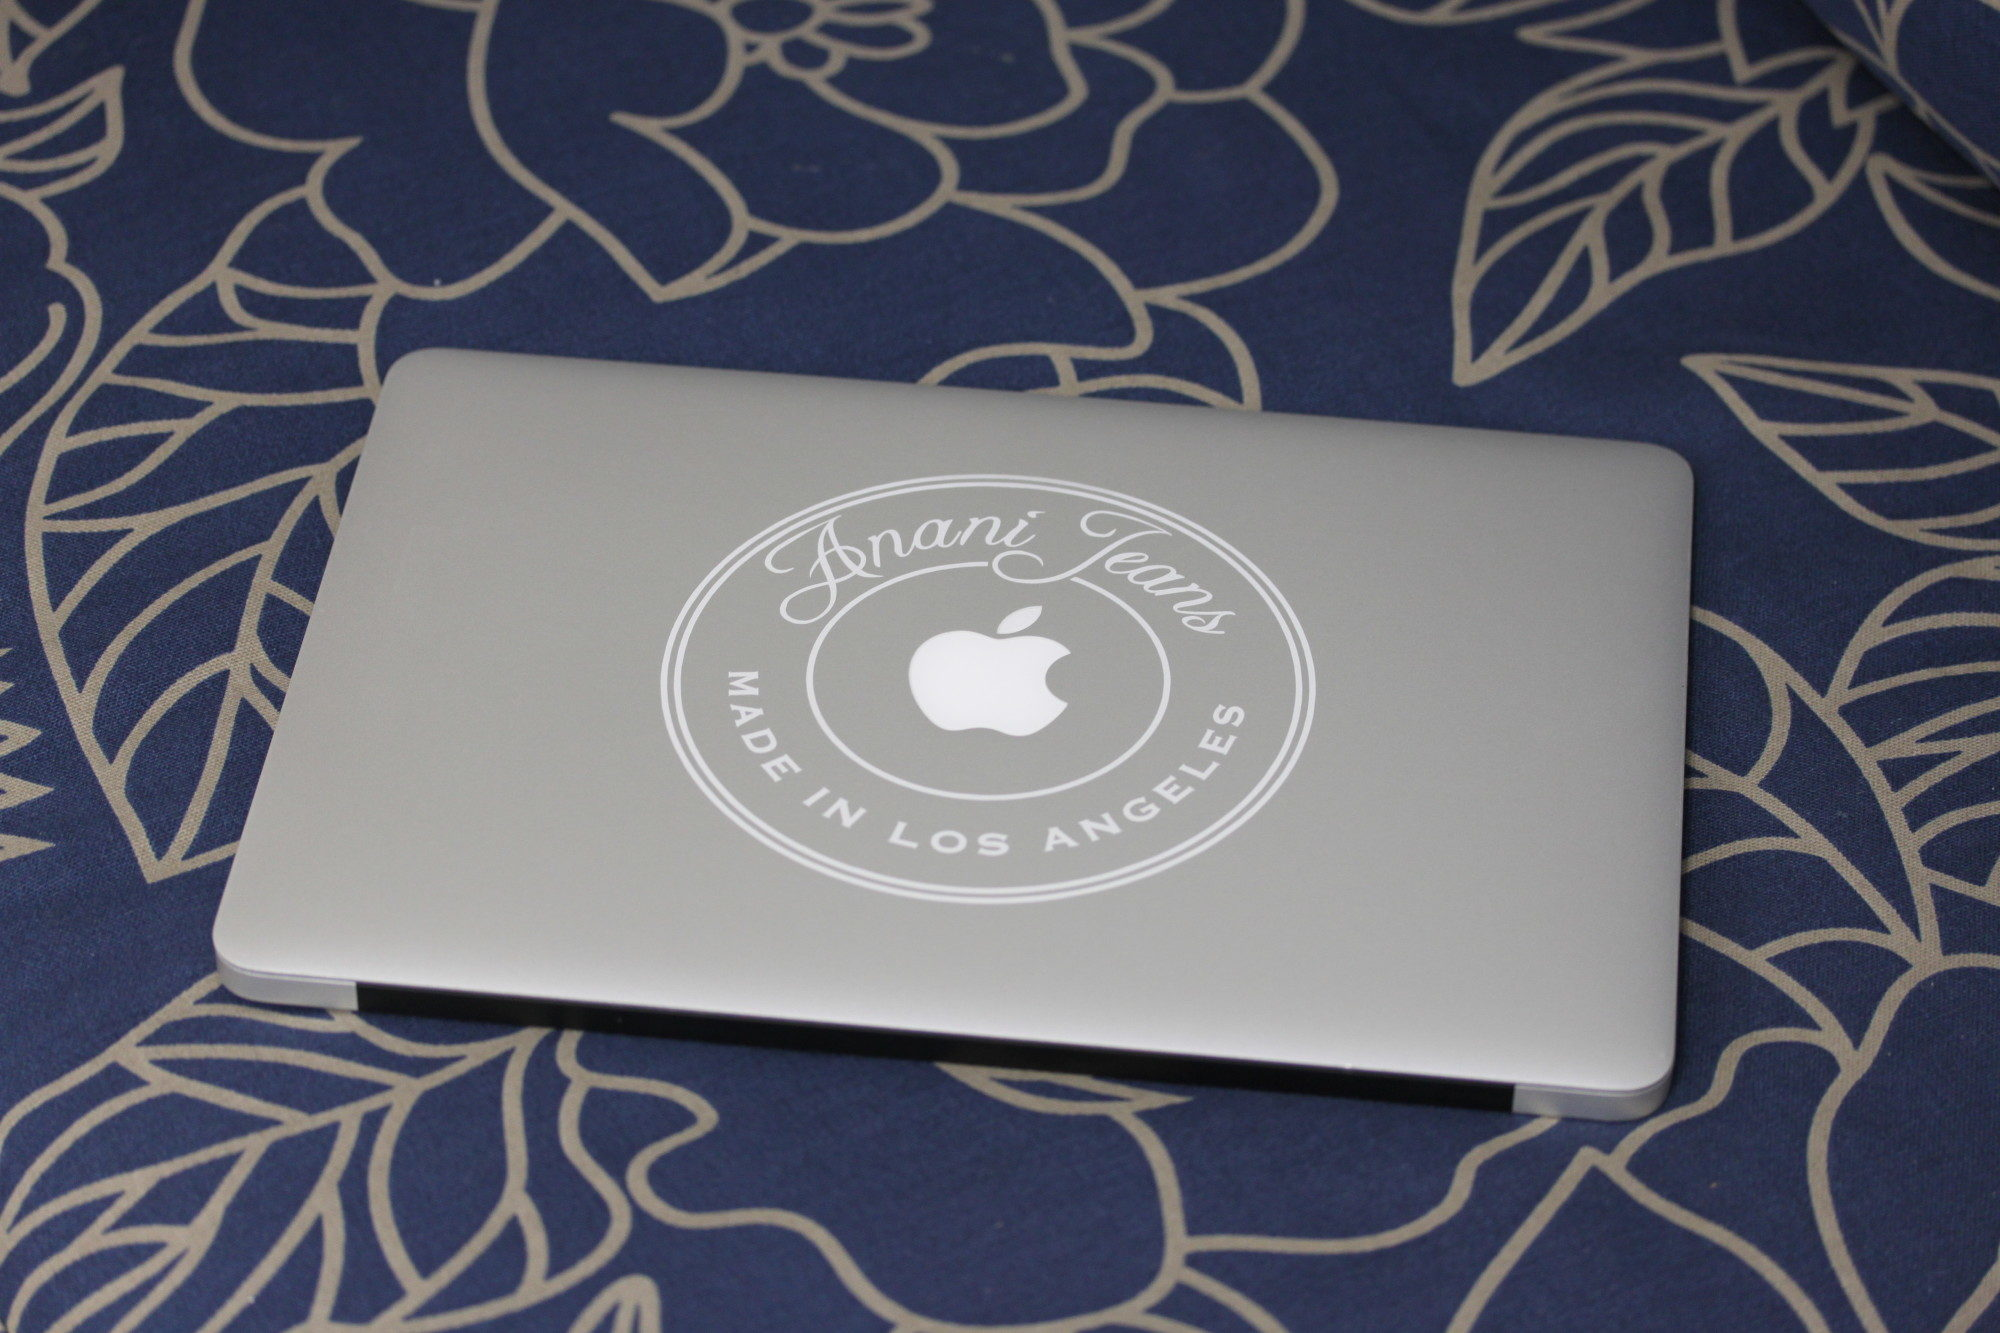 Personalized MacBook Engraving